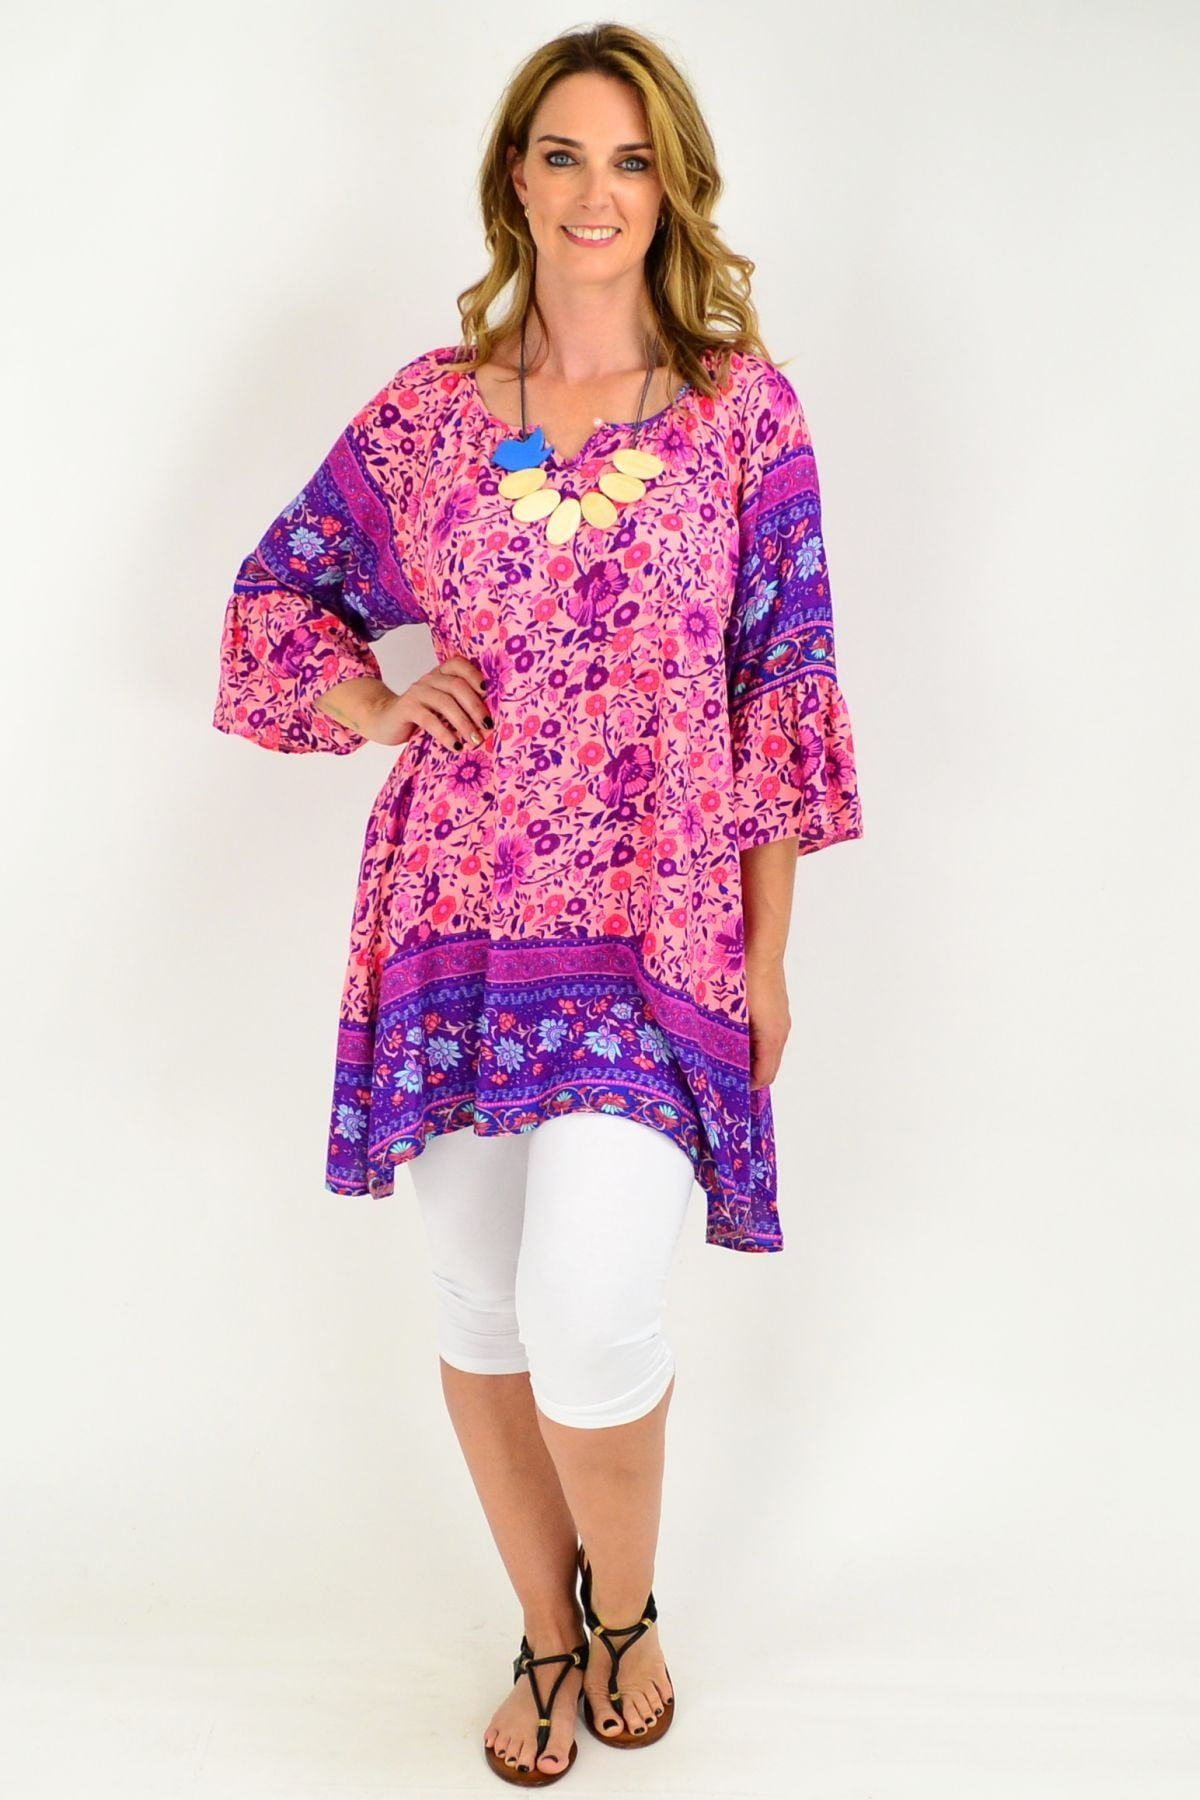 99de5357b86 Relaxed Tunic | Rayon | Loose fit blouse | Summer top | plus size ...